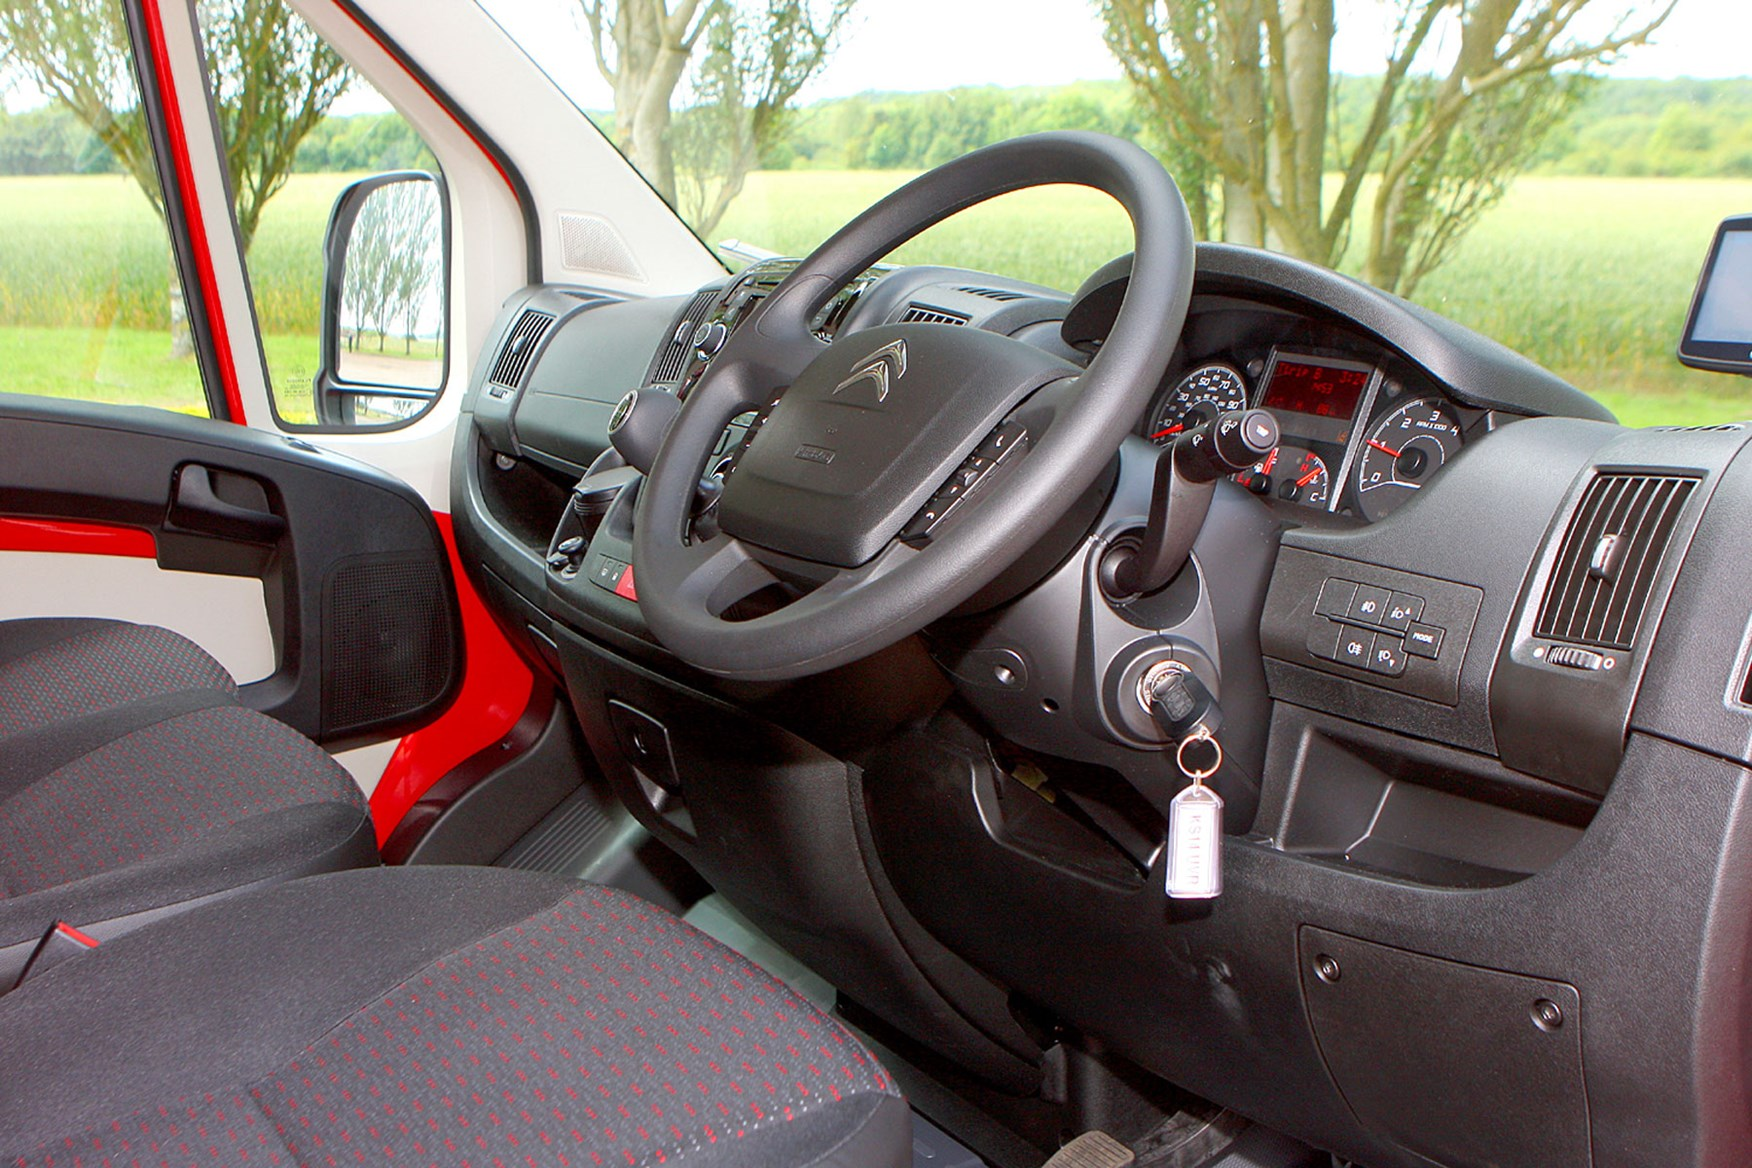 Citroen Relay 2.2 HDi 130 review - cab interior